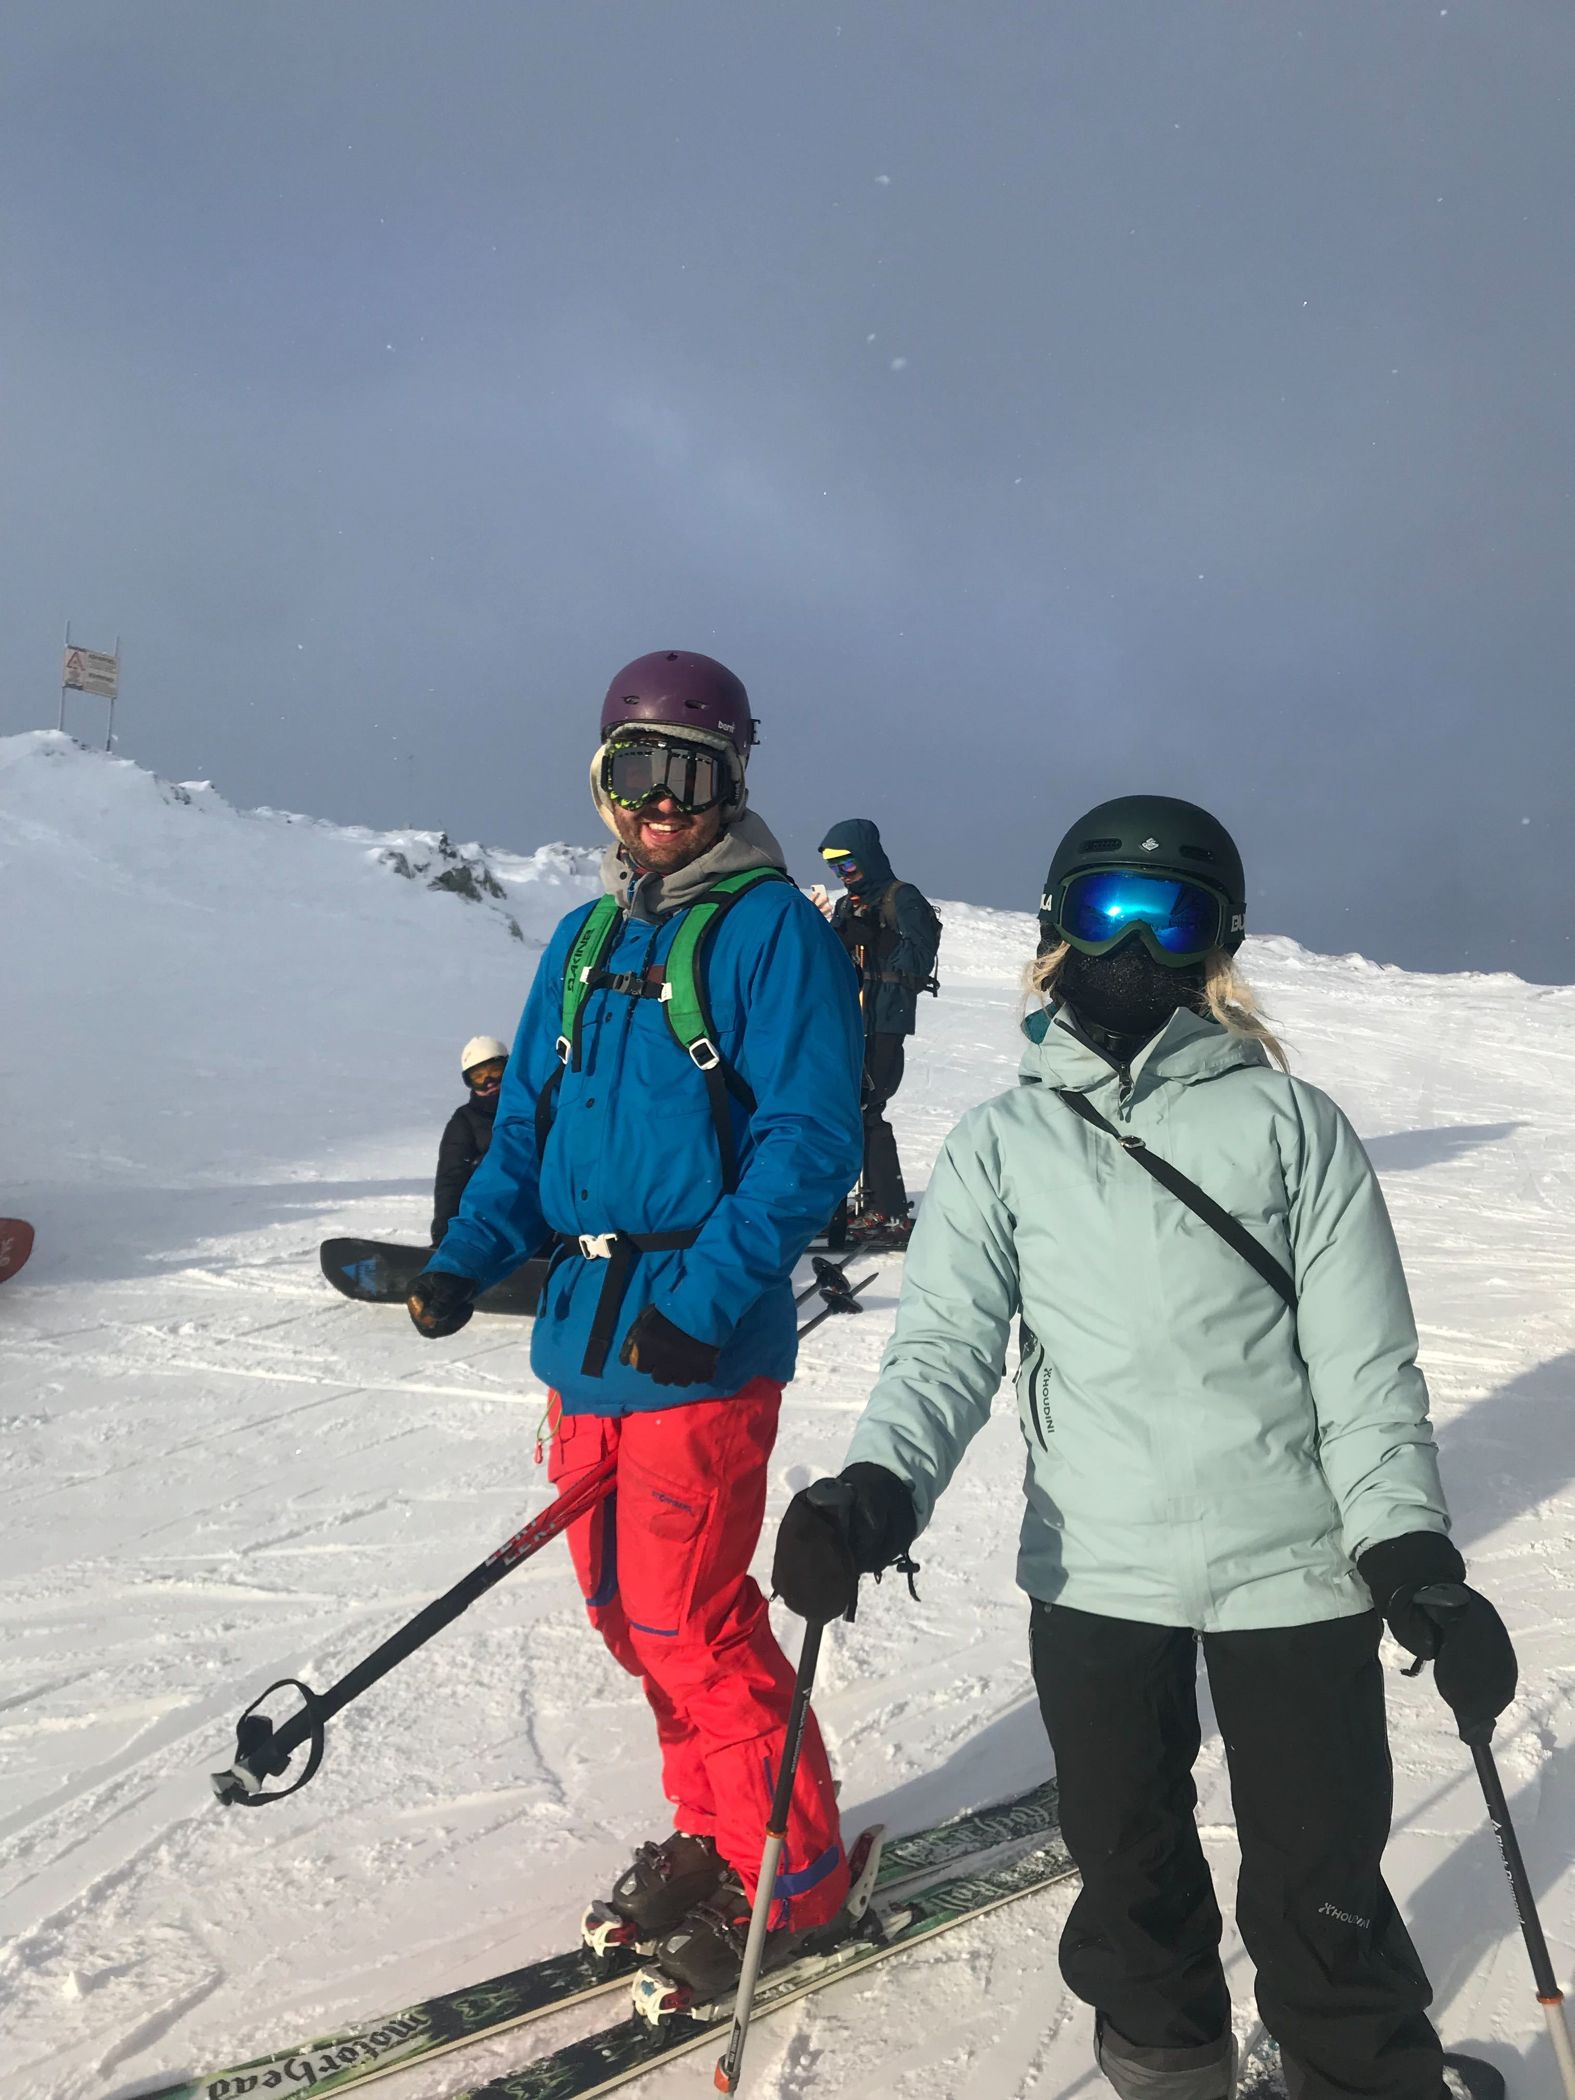 Tine and Nicolay skiing in Hemsedal